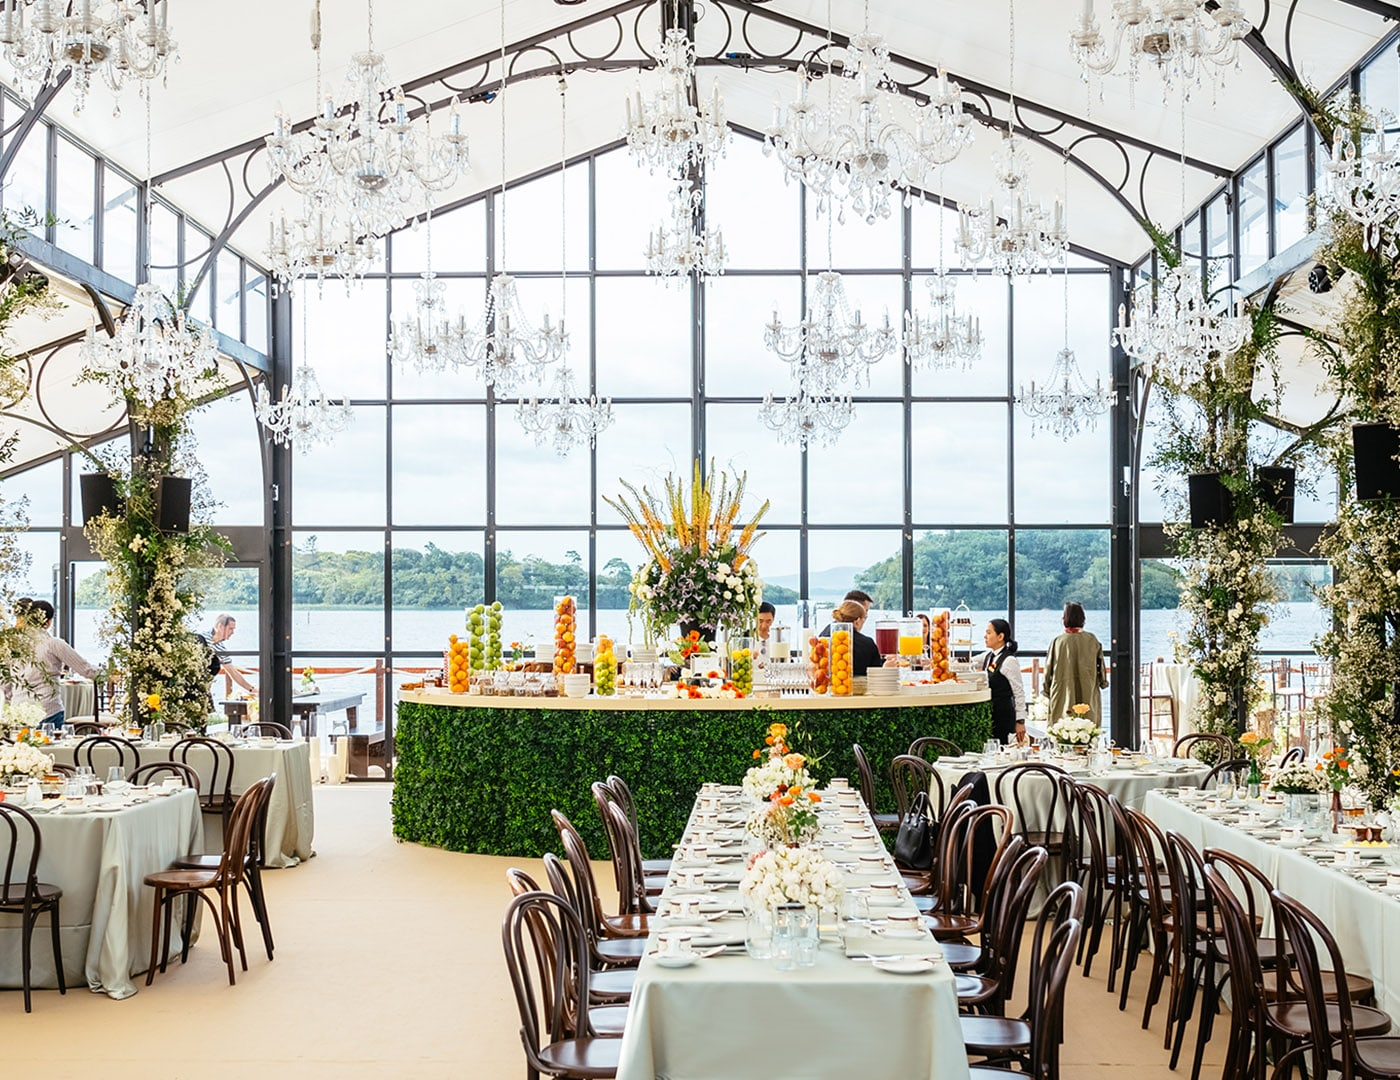 Ashford Castle, Wedding ceremony, Marquee ceremony, Event planner in Ireland, Wedding Planner in Ireland, Destination Weddings, Olivia Buckley International, lakeside Brunch